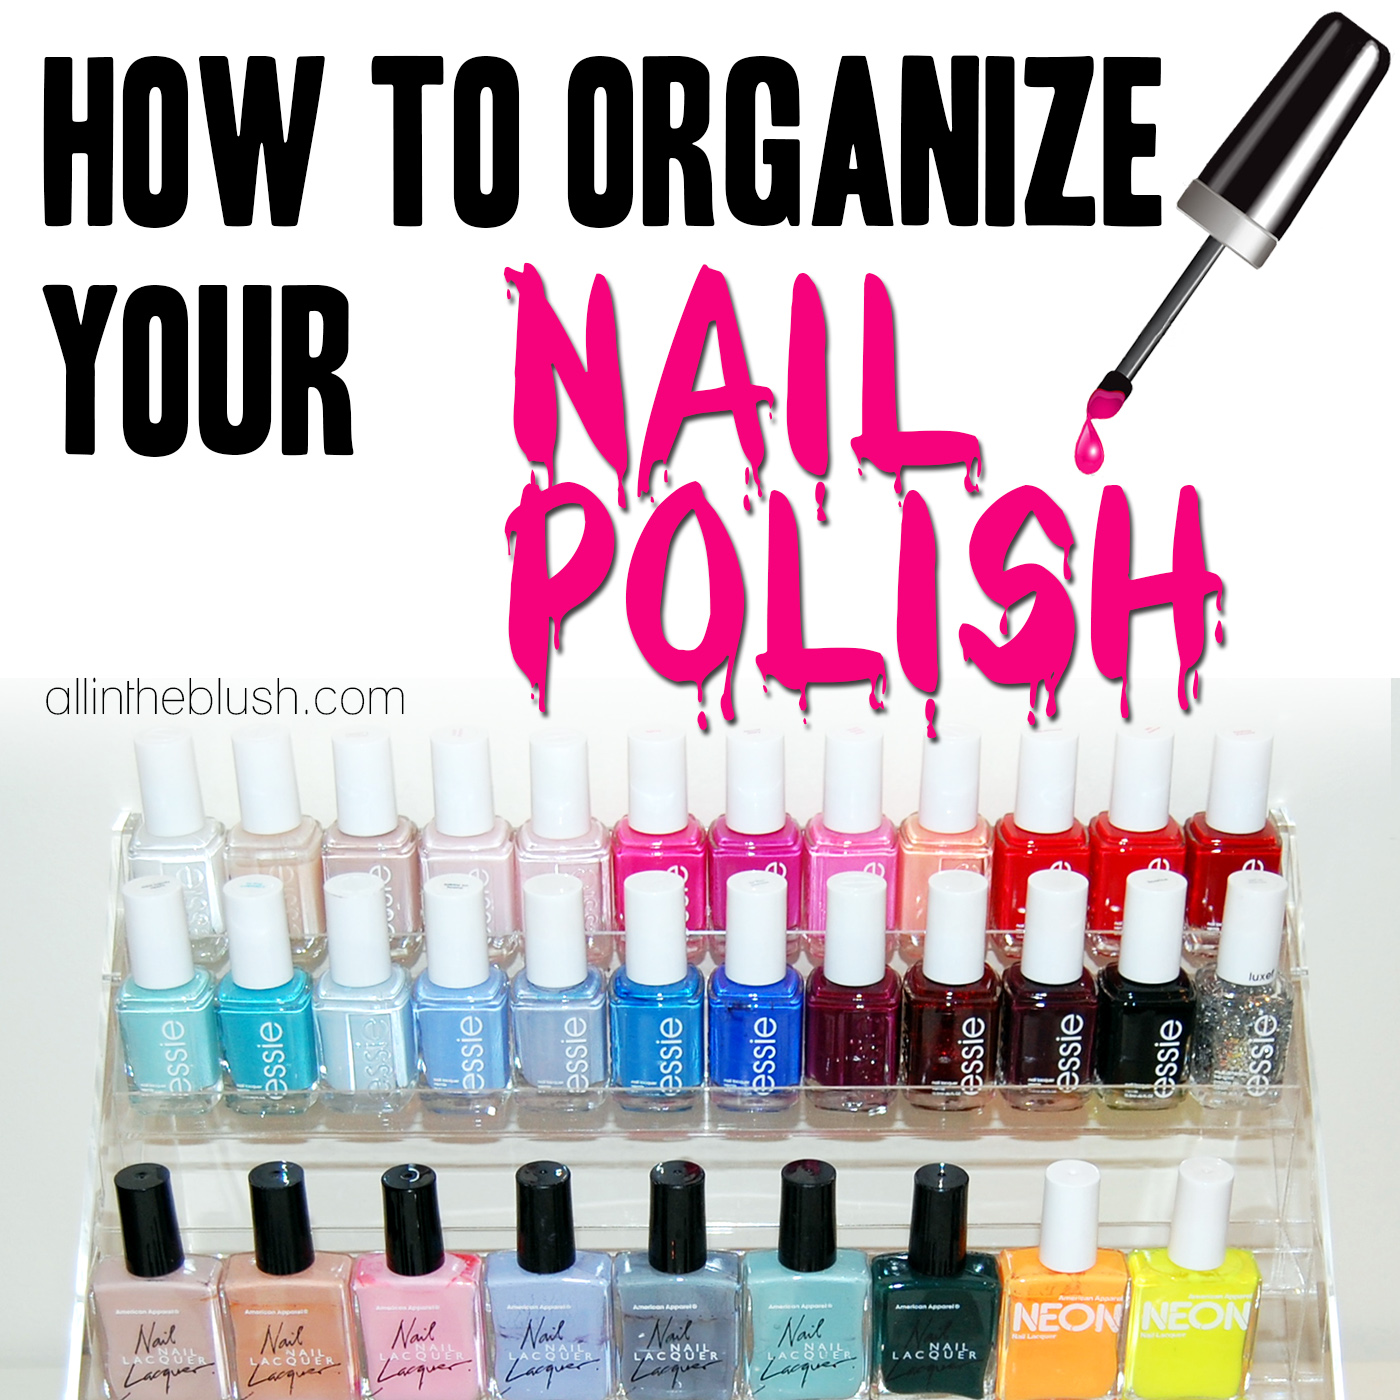 How To: Organize Your Nail Polish